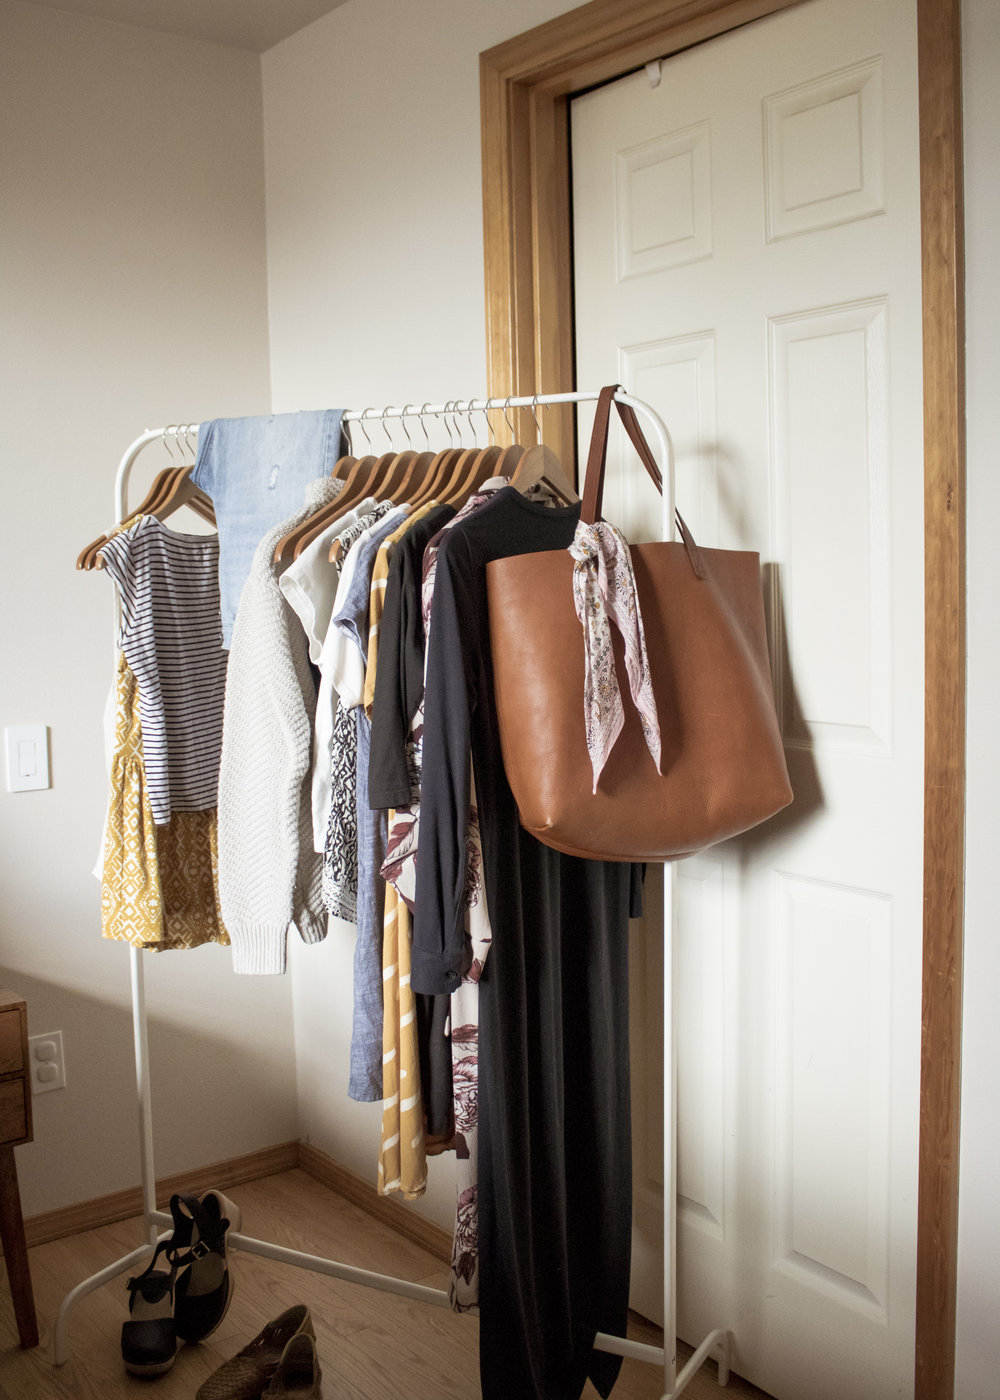 time to organize what's left in your closet. with this method, it's recommended you store as many pieces of clothing as possible on hangers so you can visually see your collection all together and easily build outfits.